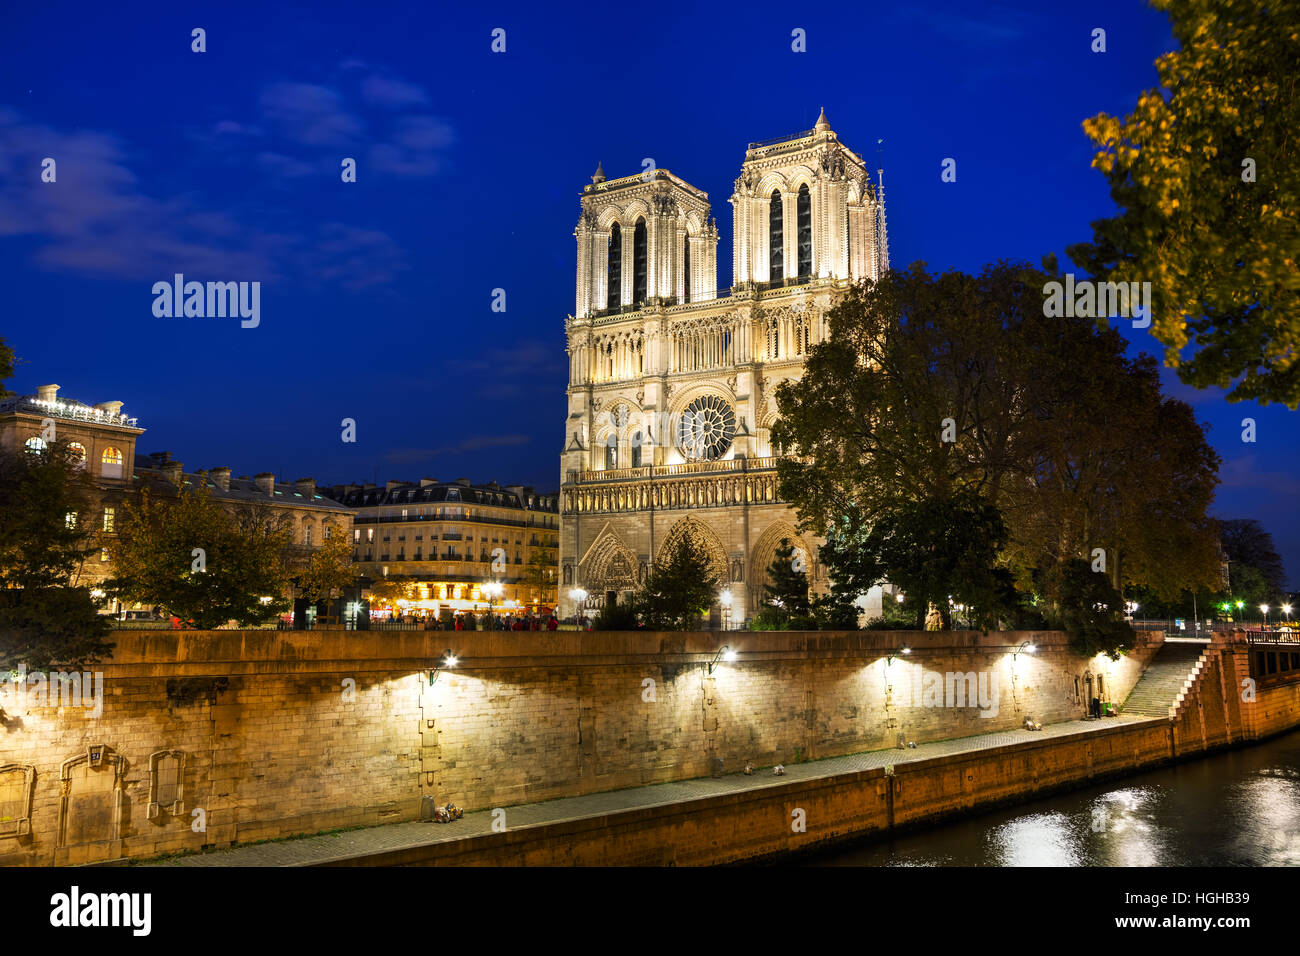 Notre Dame de Paris cathedral at night - Stock Image